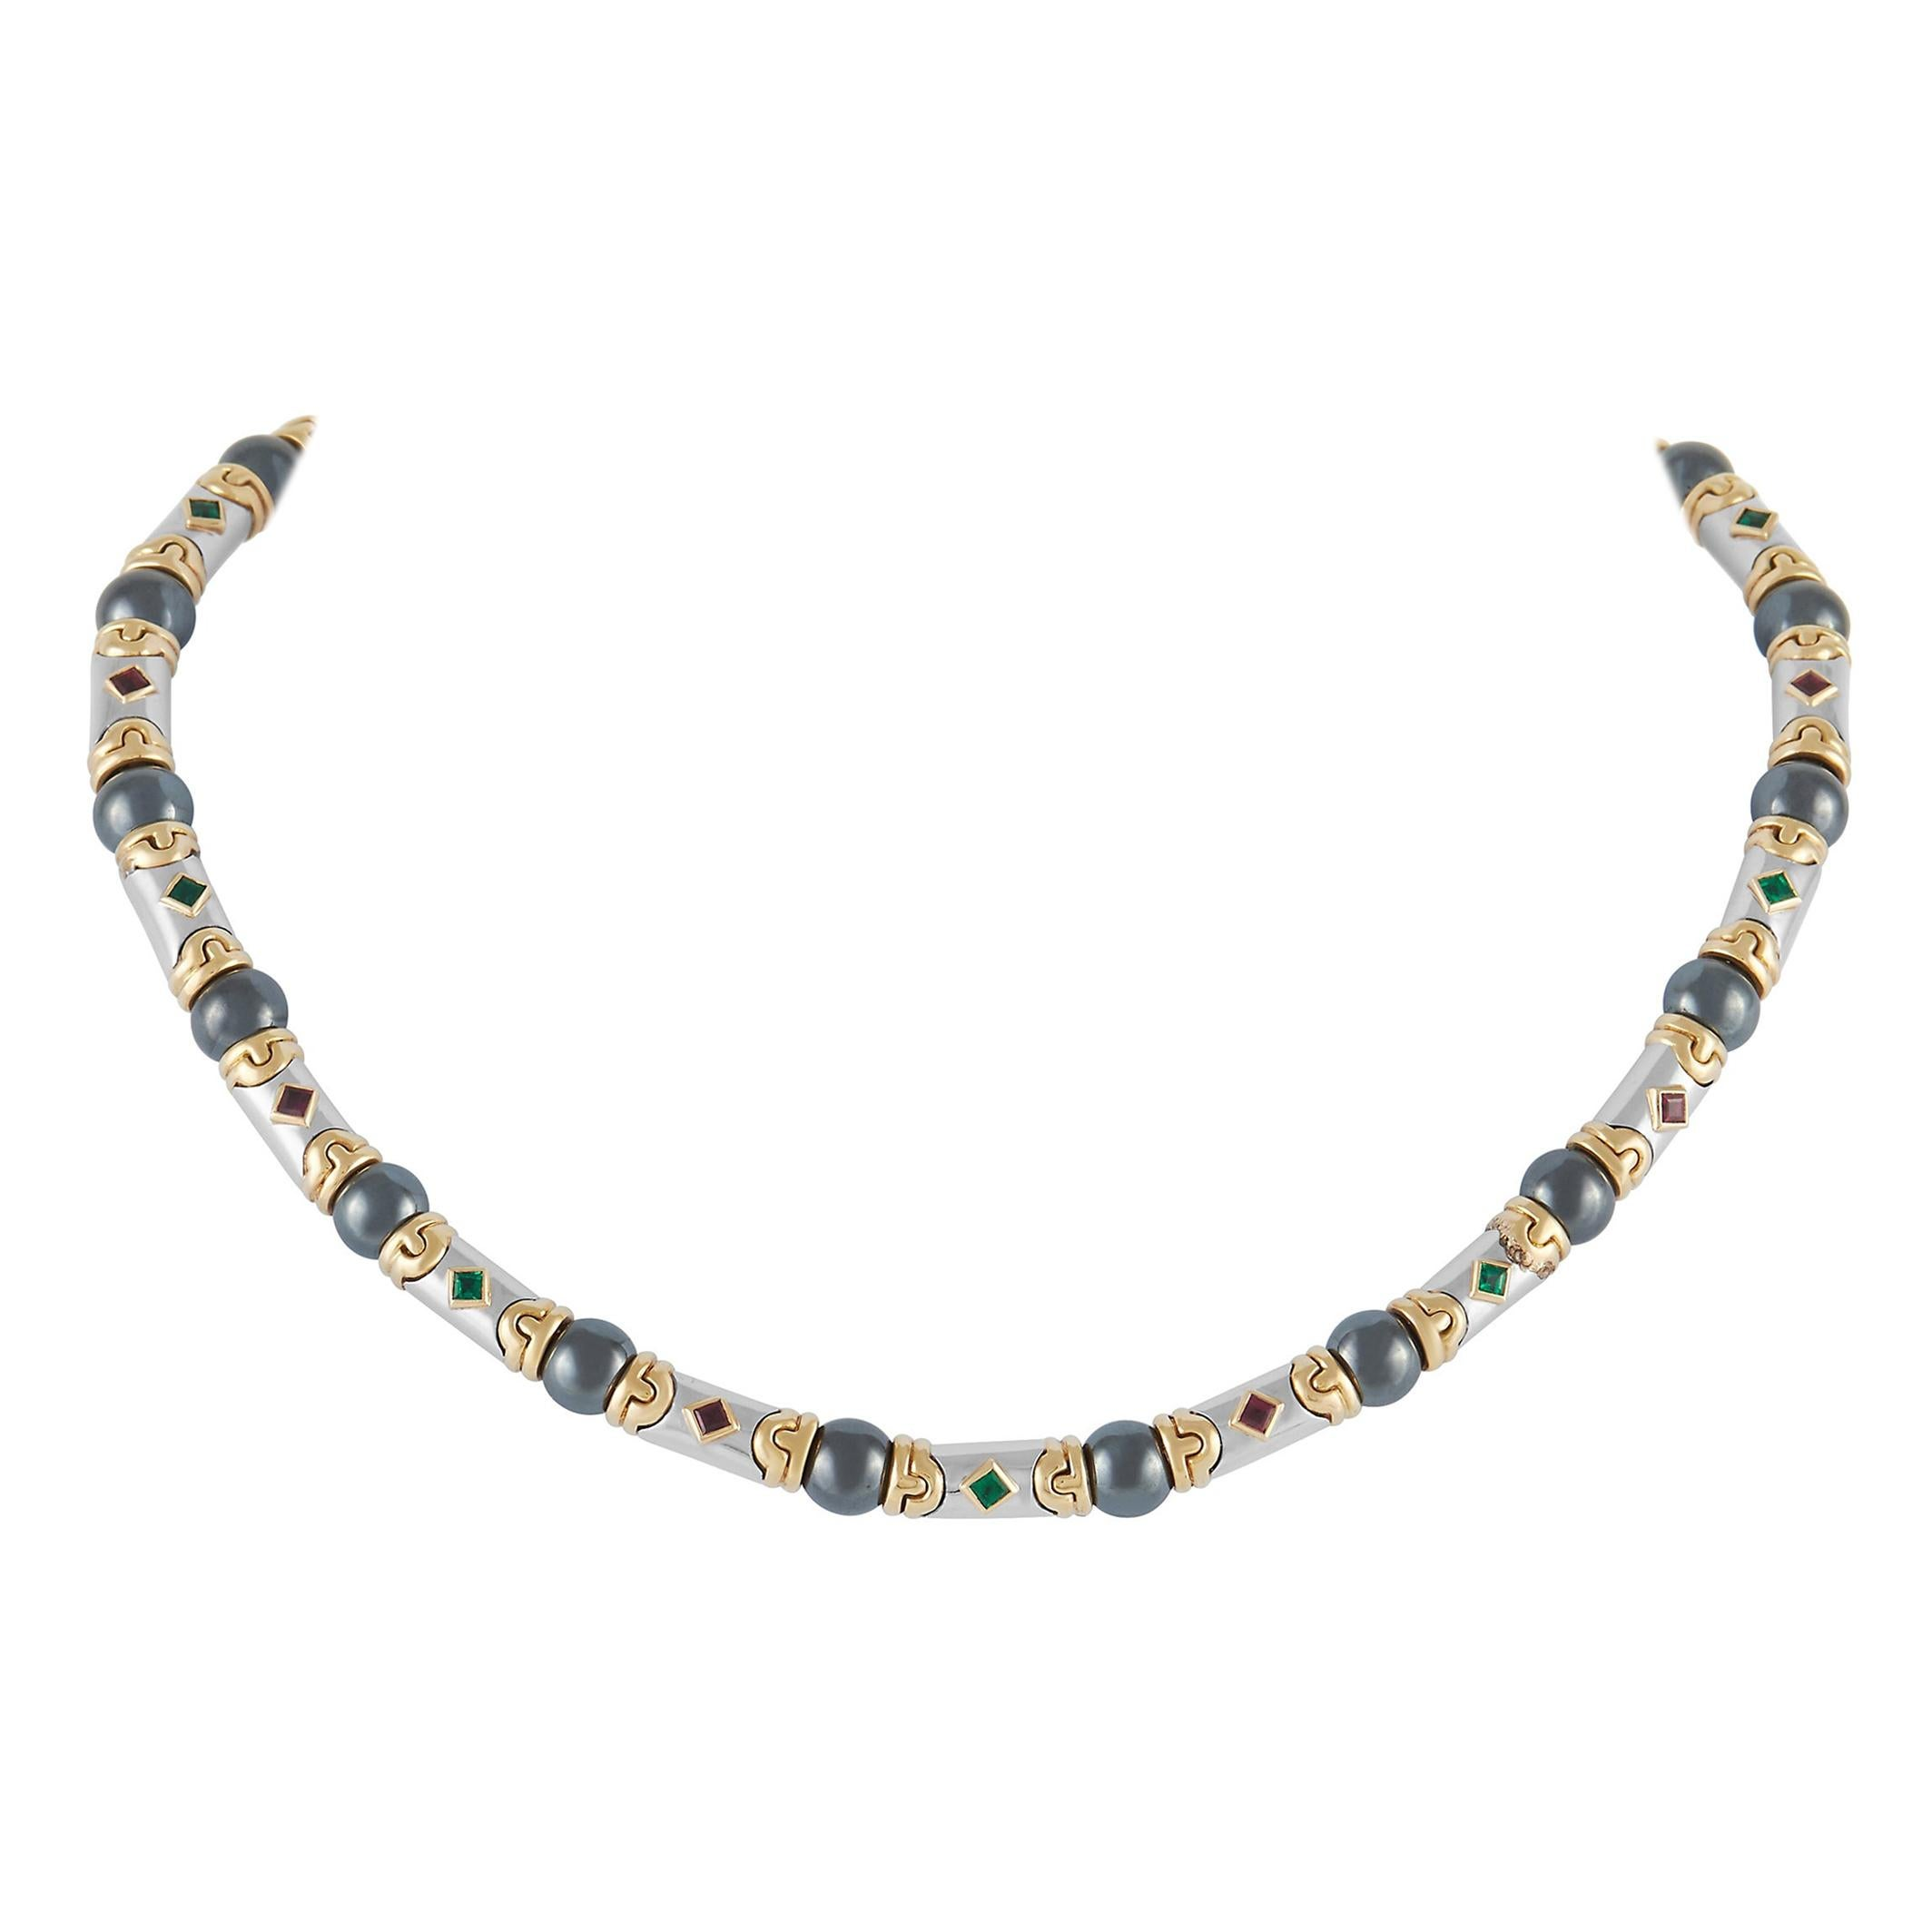 Bvlgari 18K Yellow Gold and White Gold Hematite, Ruby, and Emerald Necklace